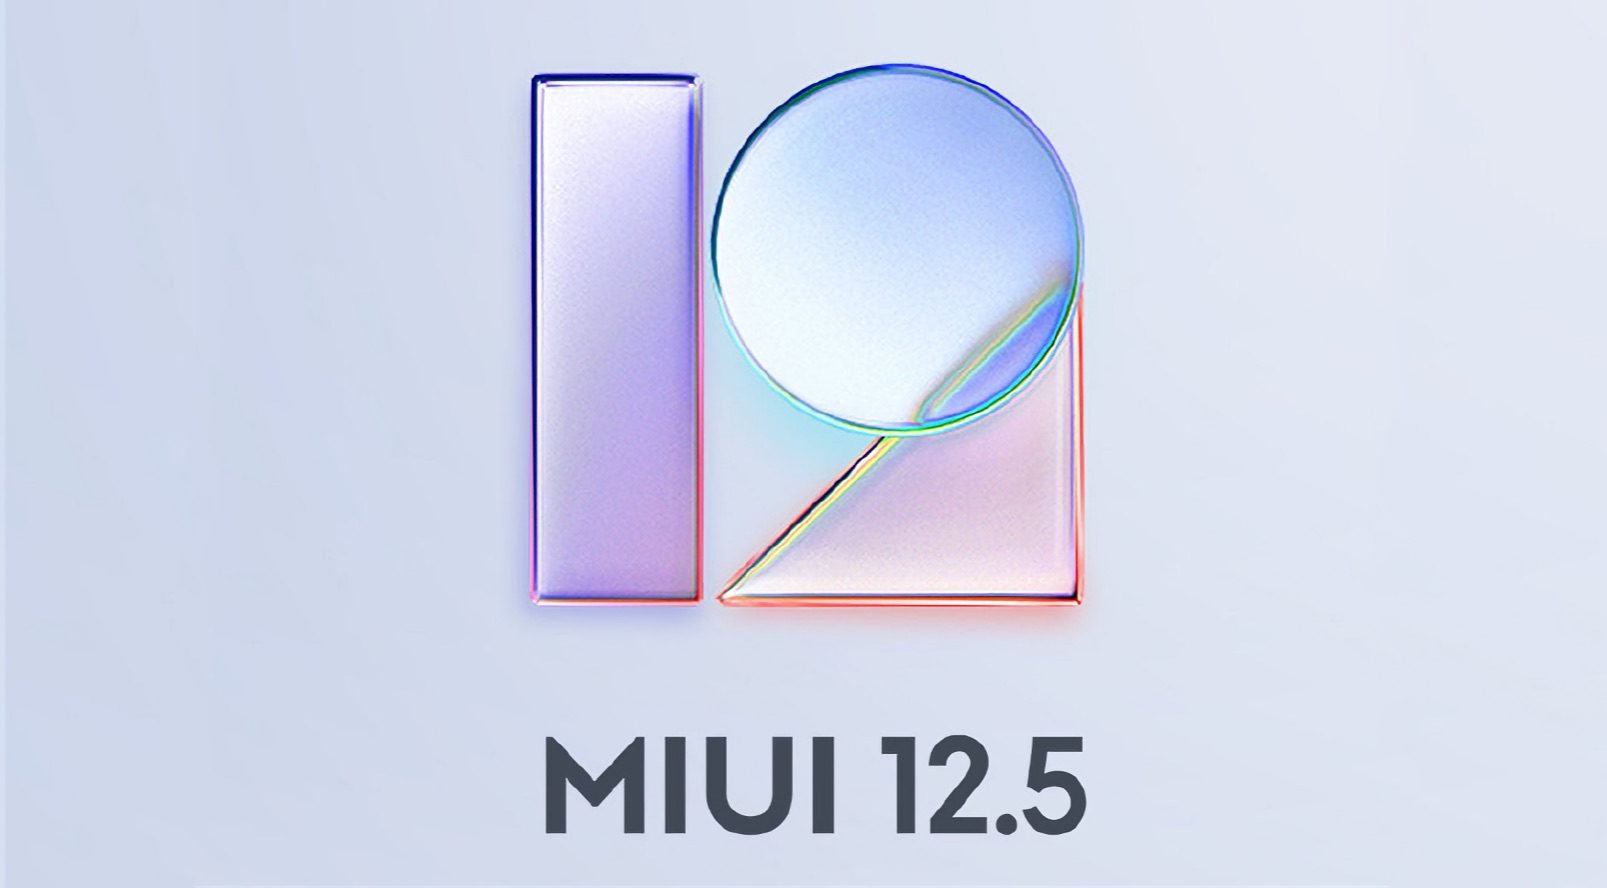 MIUI 12.5: Xiaomi Surprised And Came To 7 Models